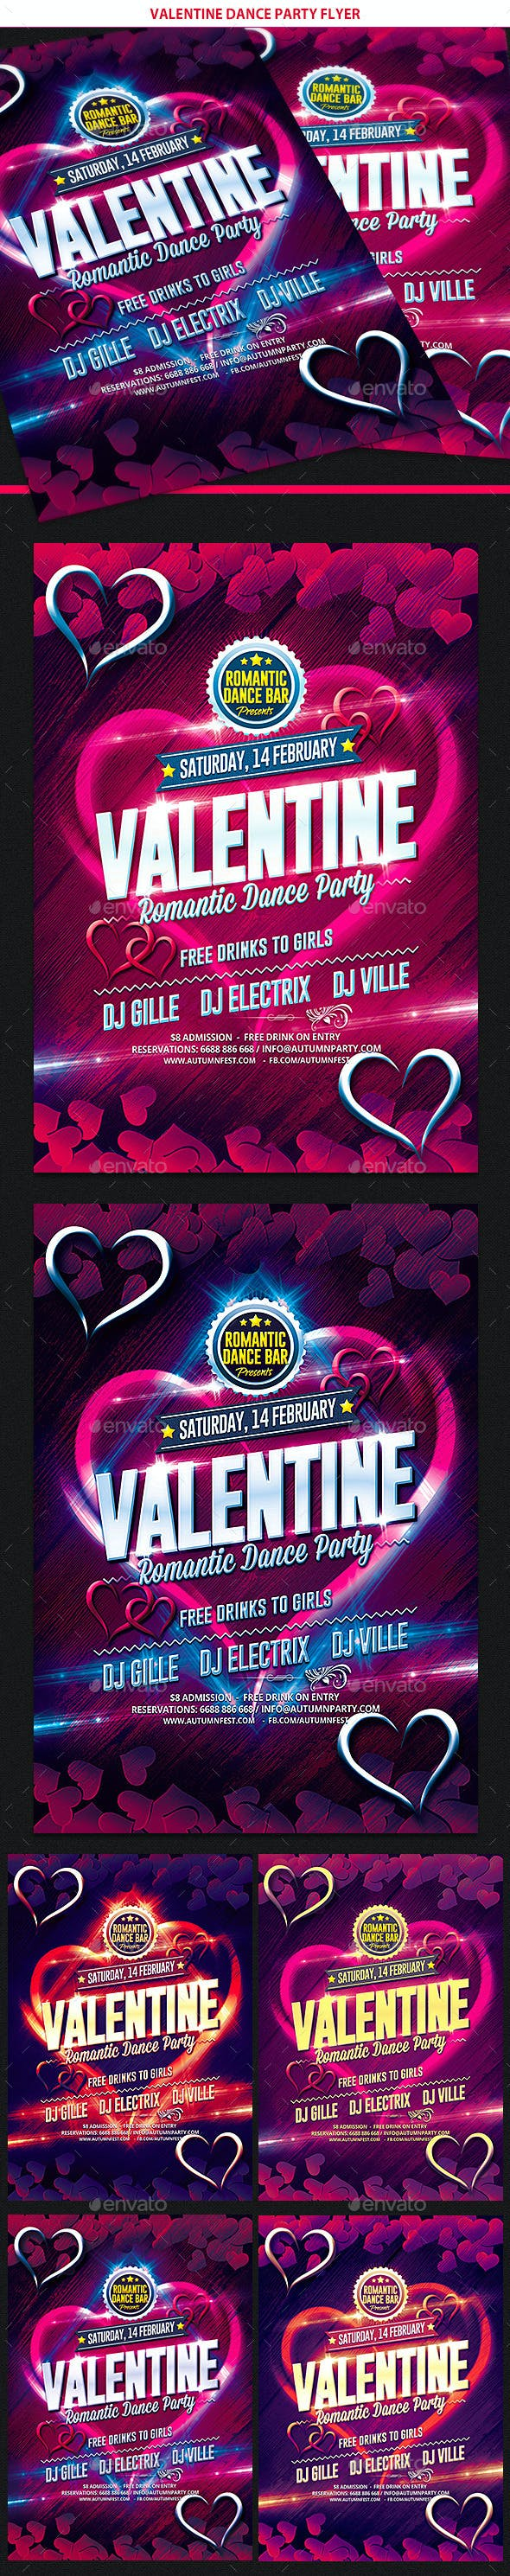 Valentines Day Dance Party Flyer By Gilledeville Graphicriver